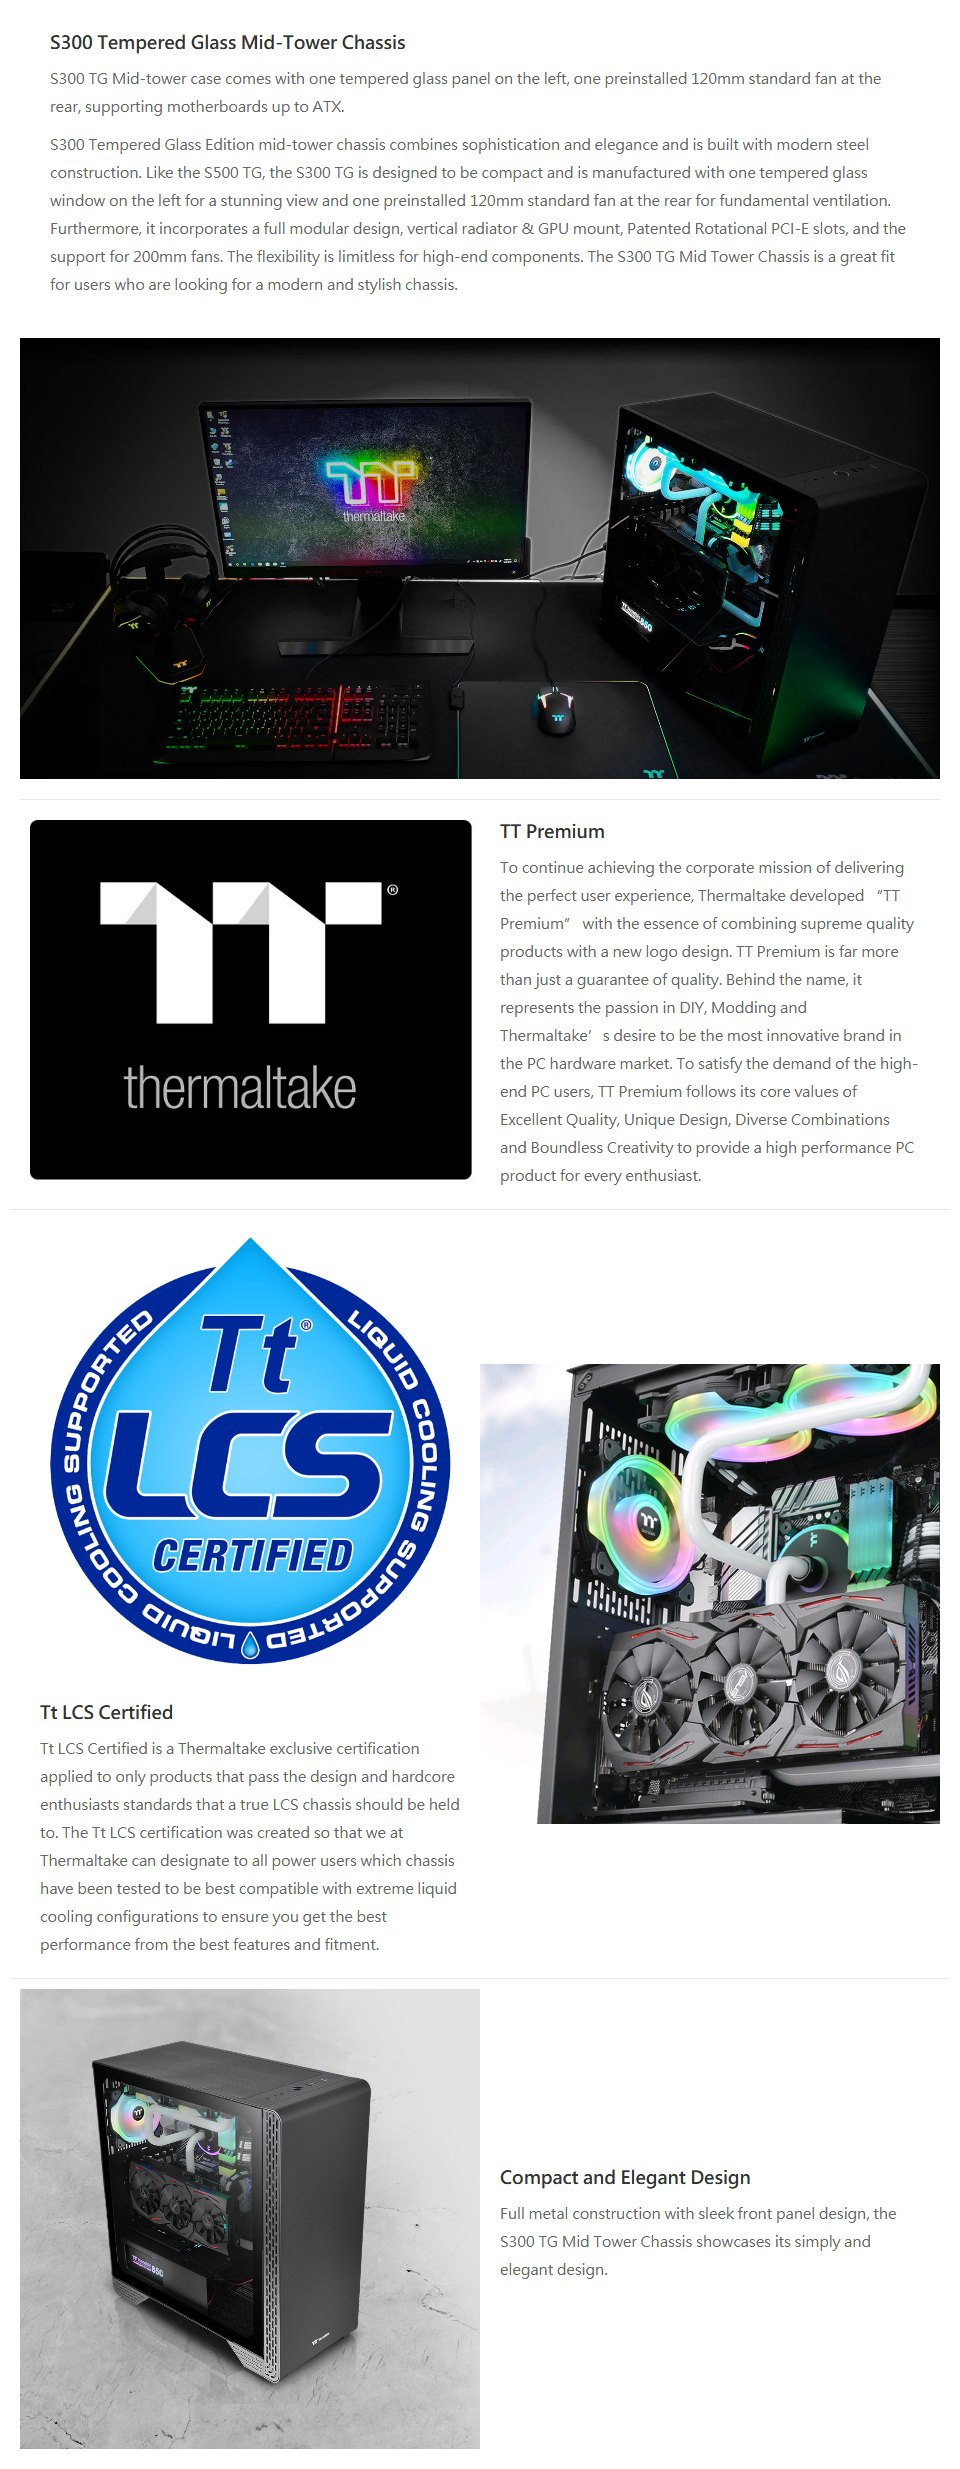 Thermaltake S300 Tempered Glass Mid-Tower Case Black Edition features